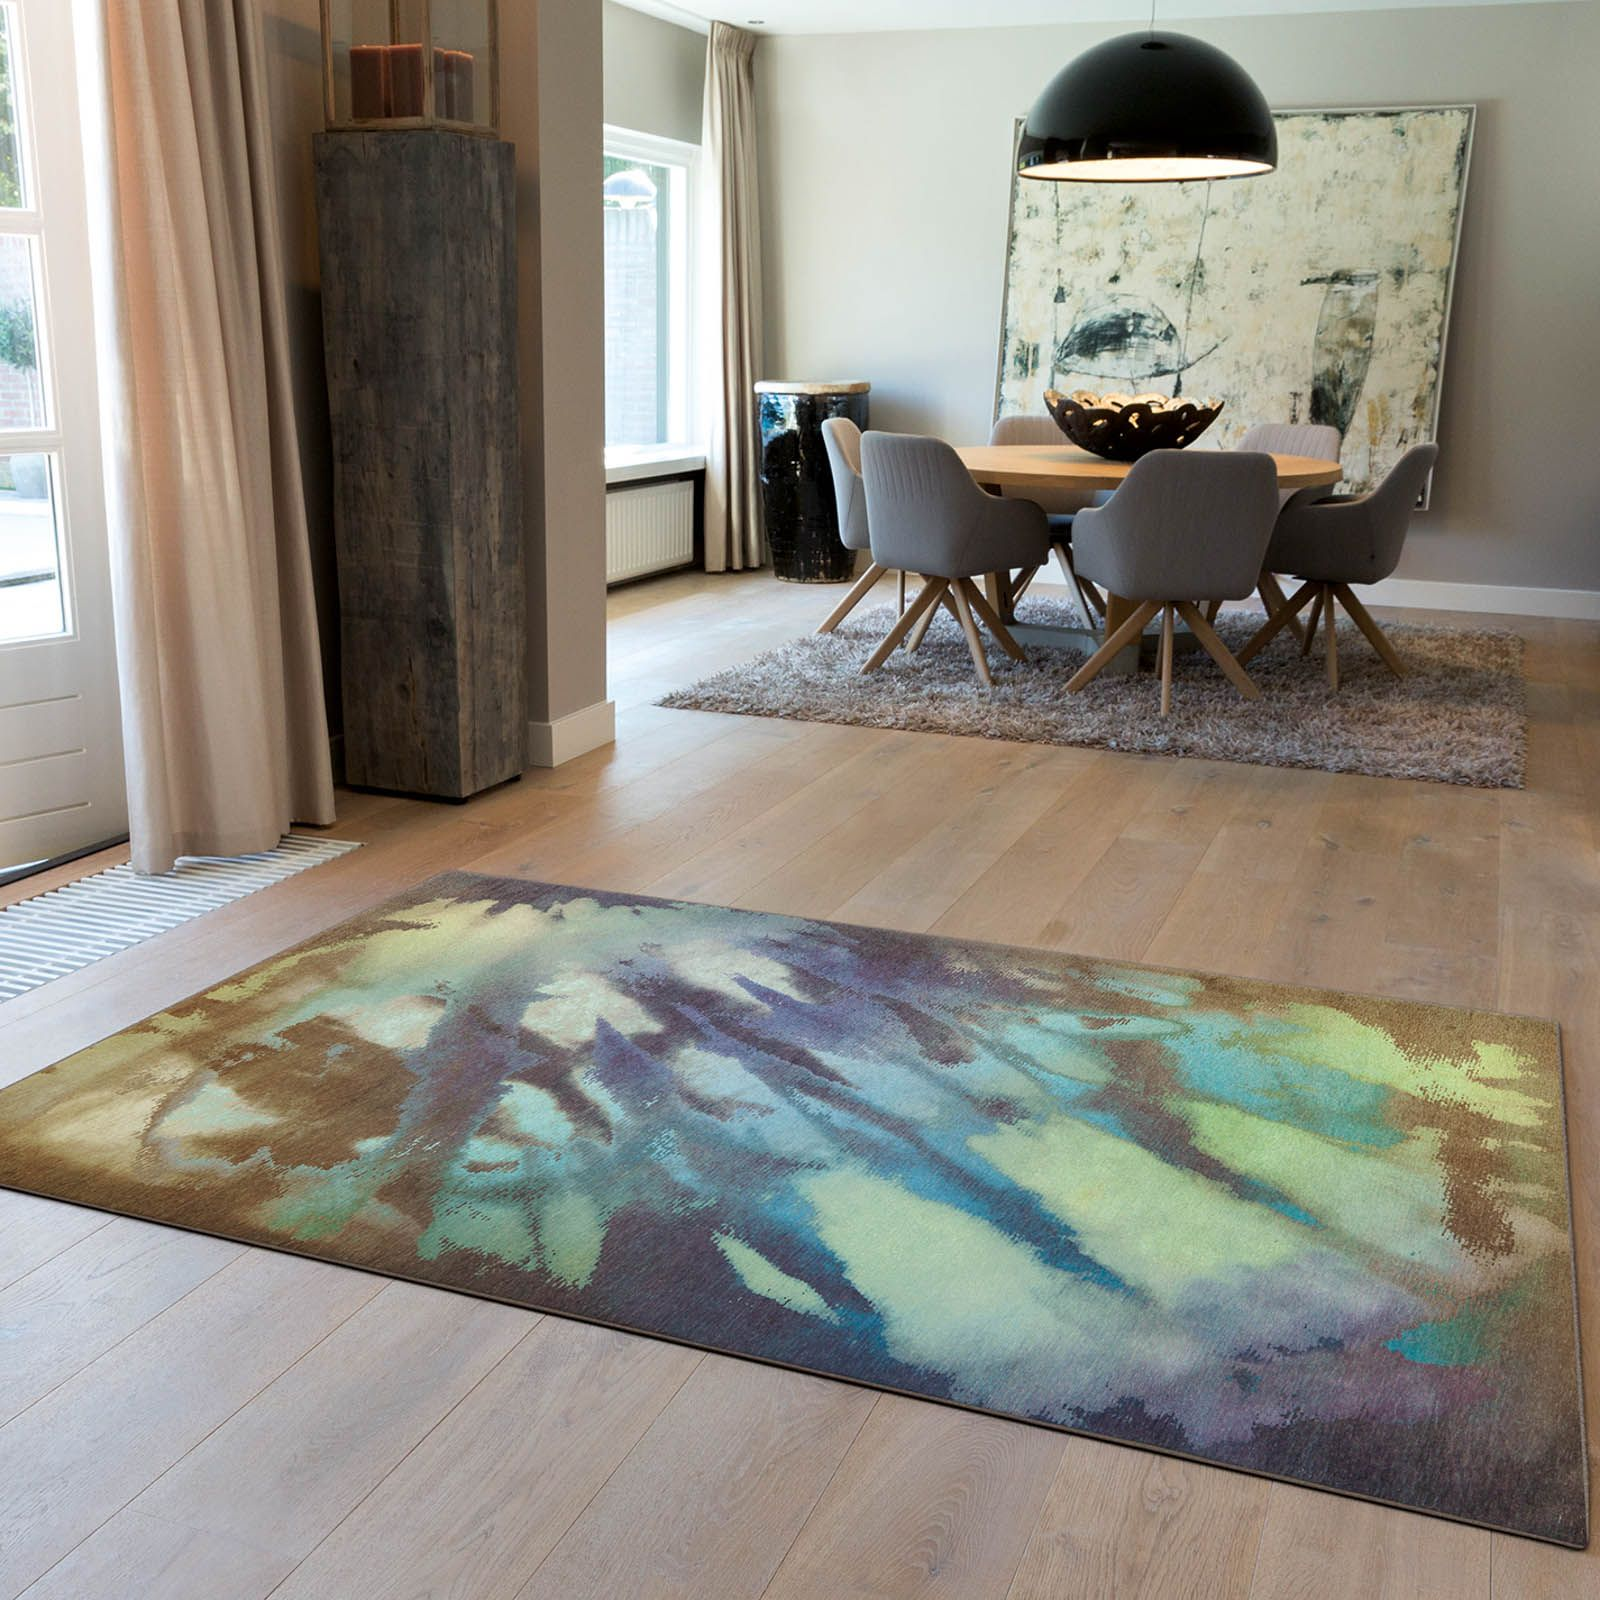 Choose From A Large Selection Of Designs Textures Qualities And Sizes All Designed To Offer High Levels Of Comfort And Luxury Funky Rugs Modern Rugs Rugs